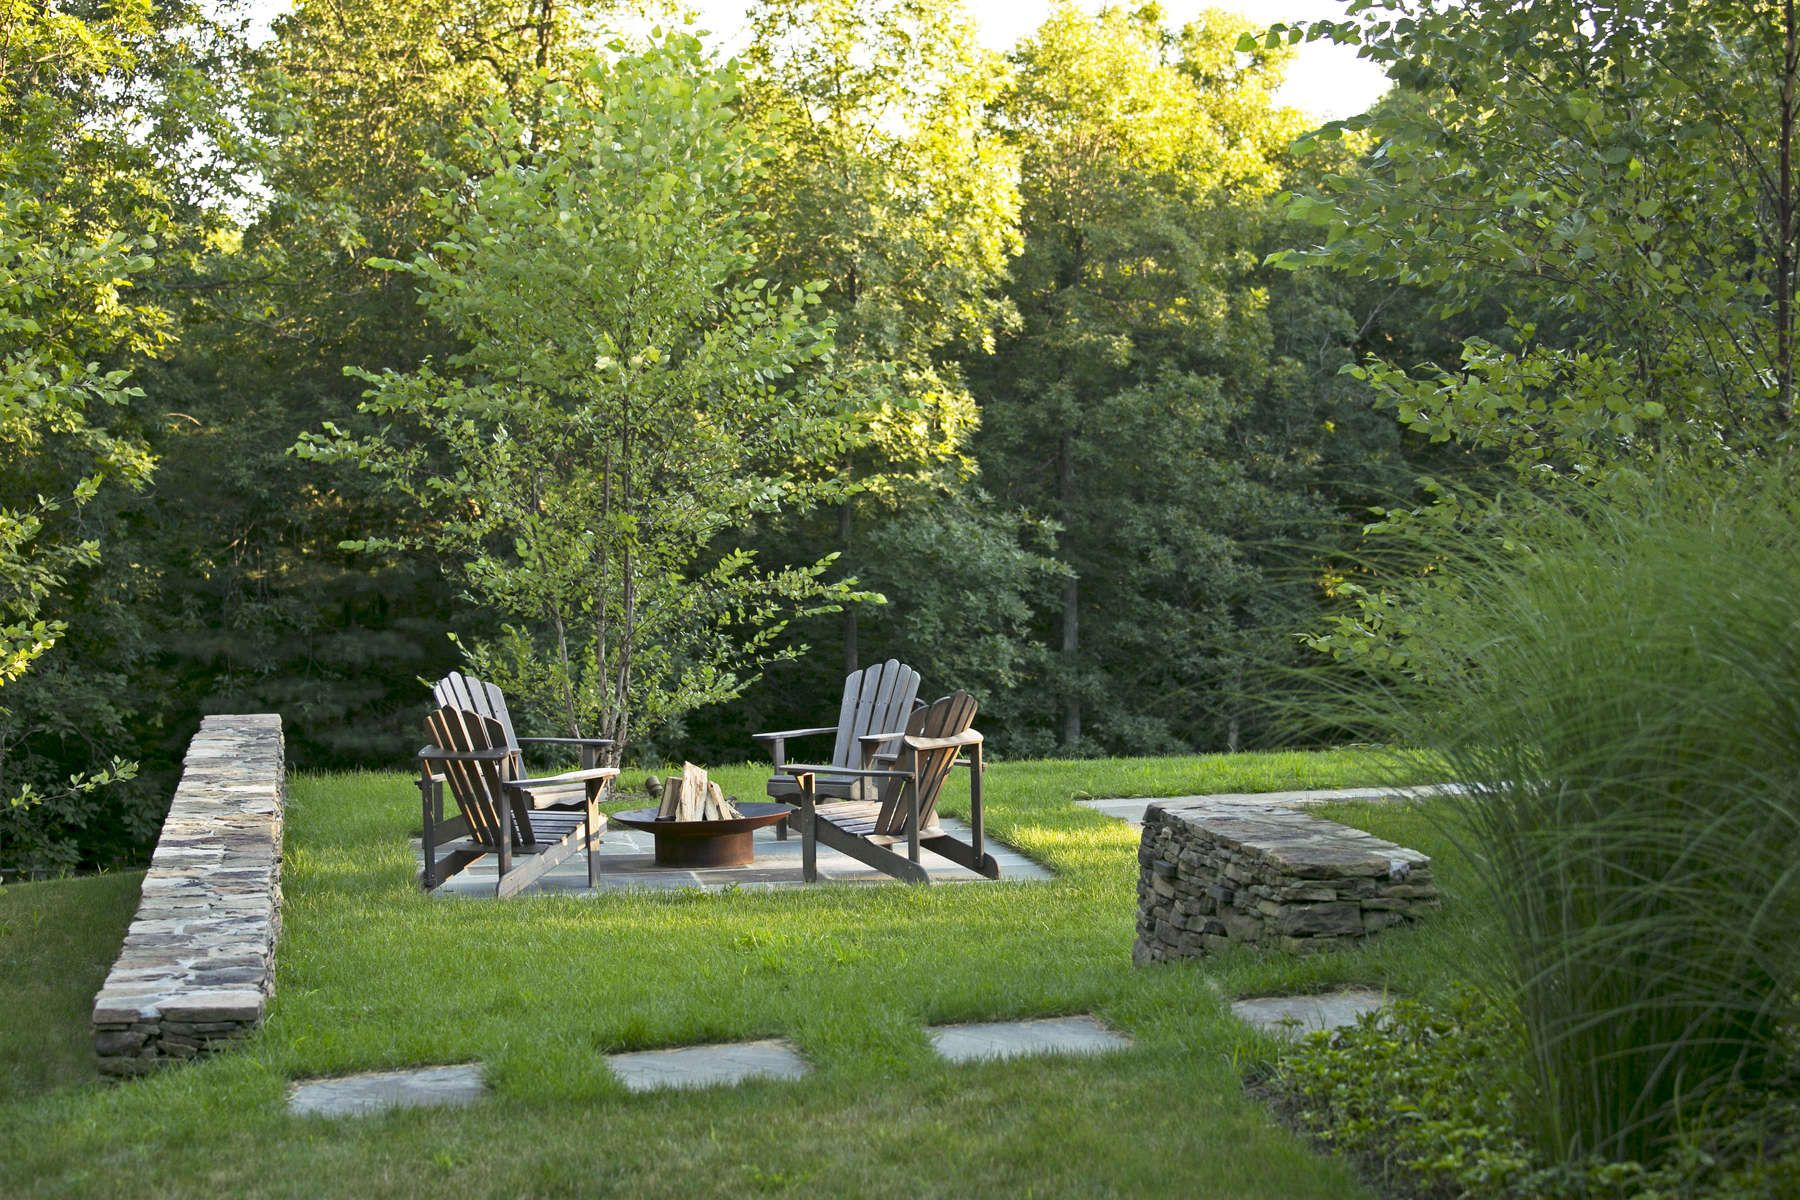 Hudson Valley Residence Fire Pit And Fieldstone Walls R Design Land Architects In New York And Colorado Fire Pit Wall Landscape Landscape Architecture